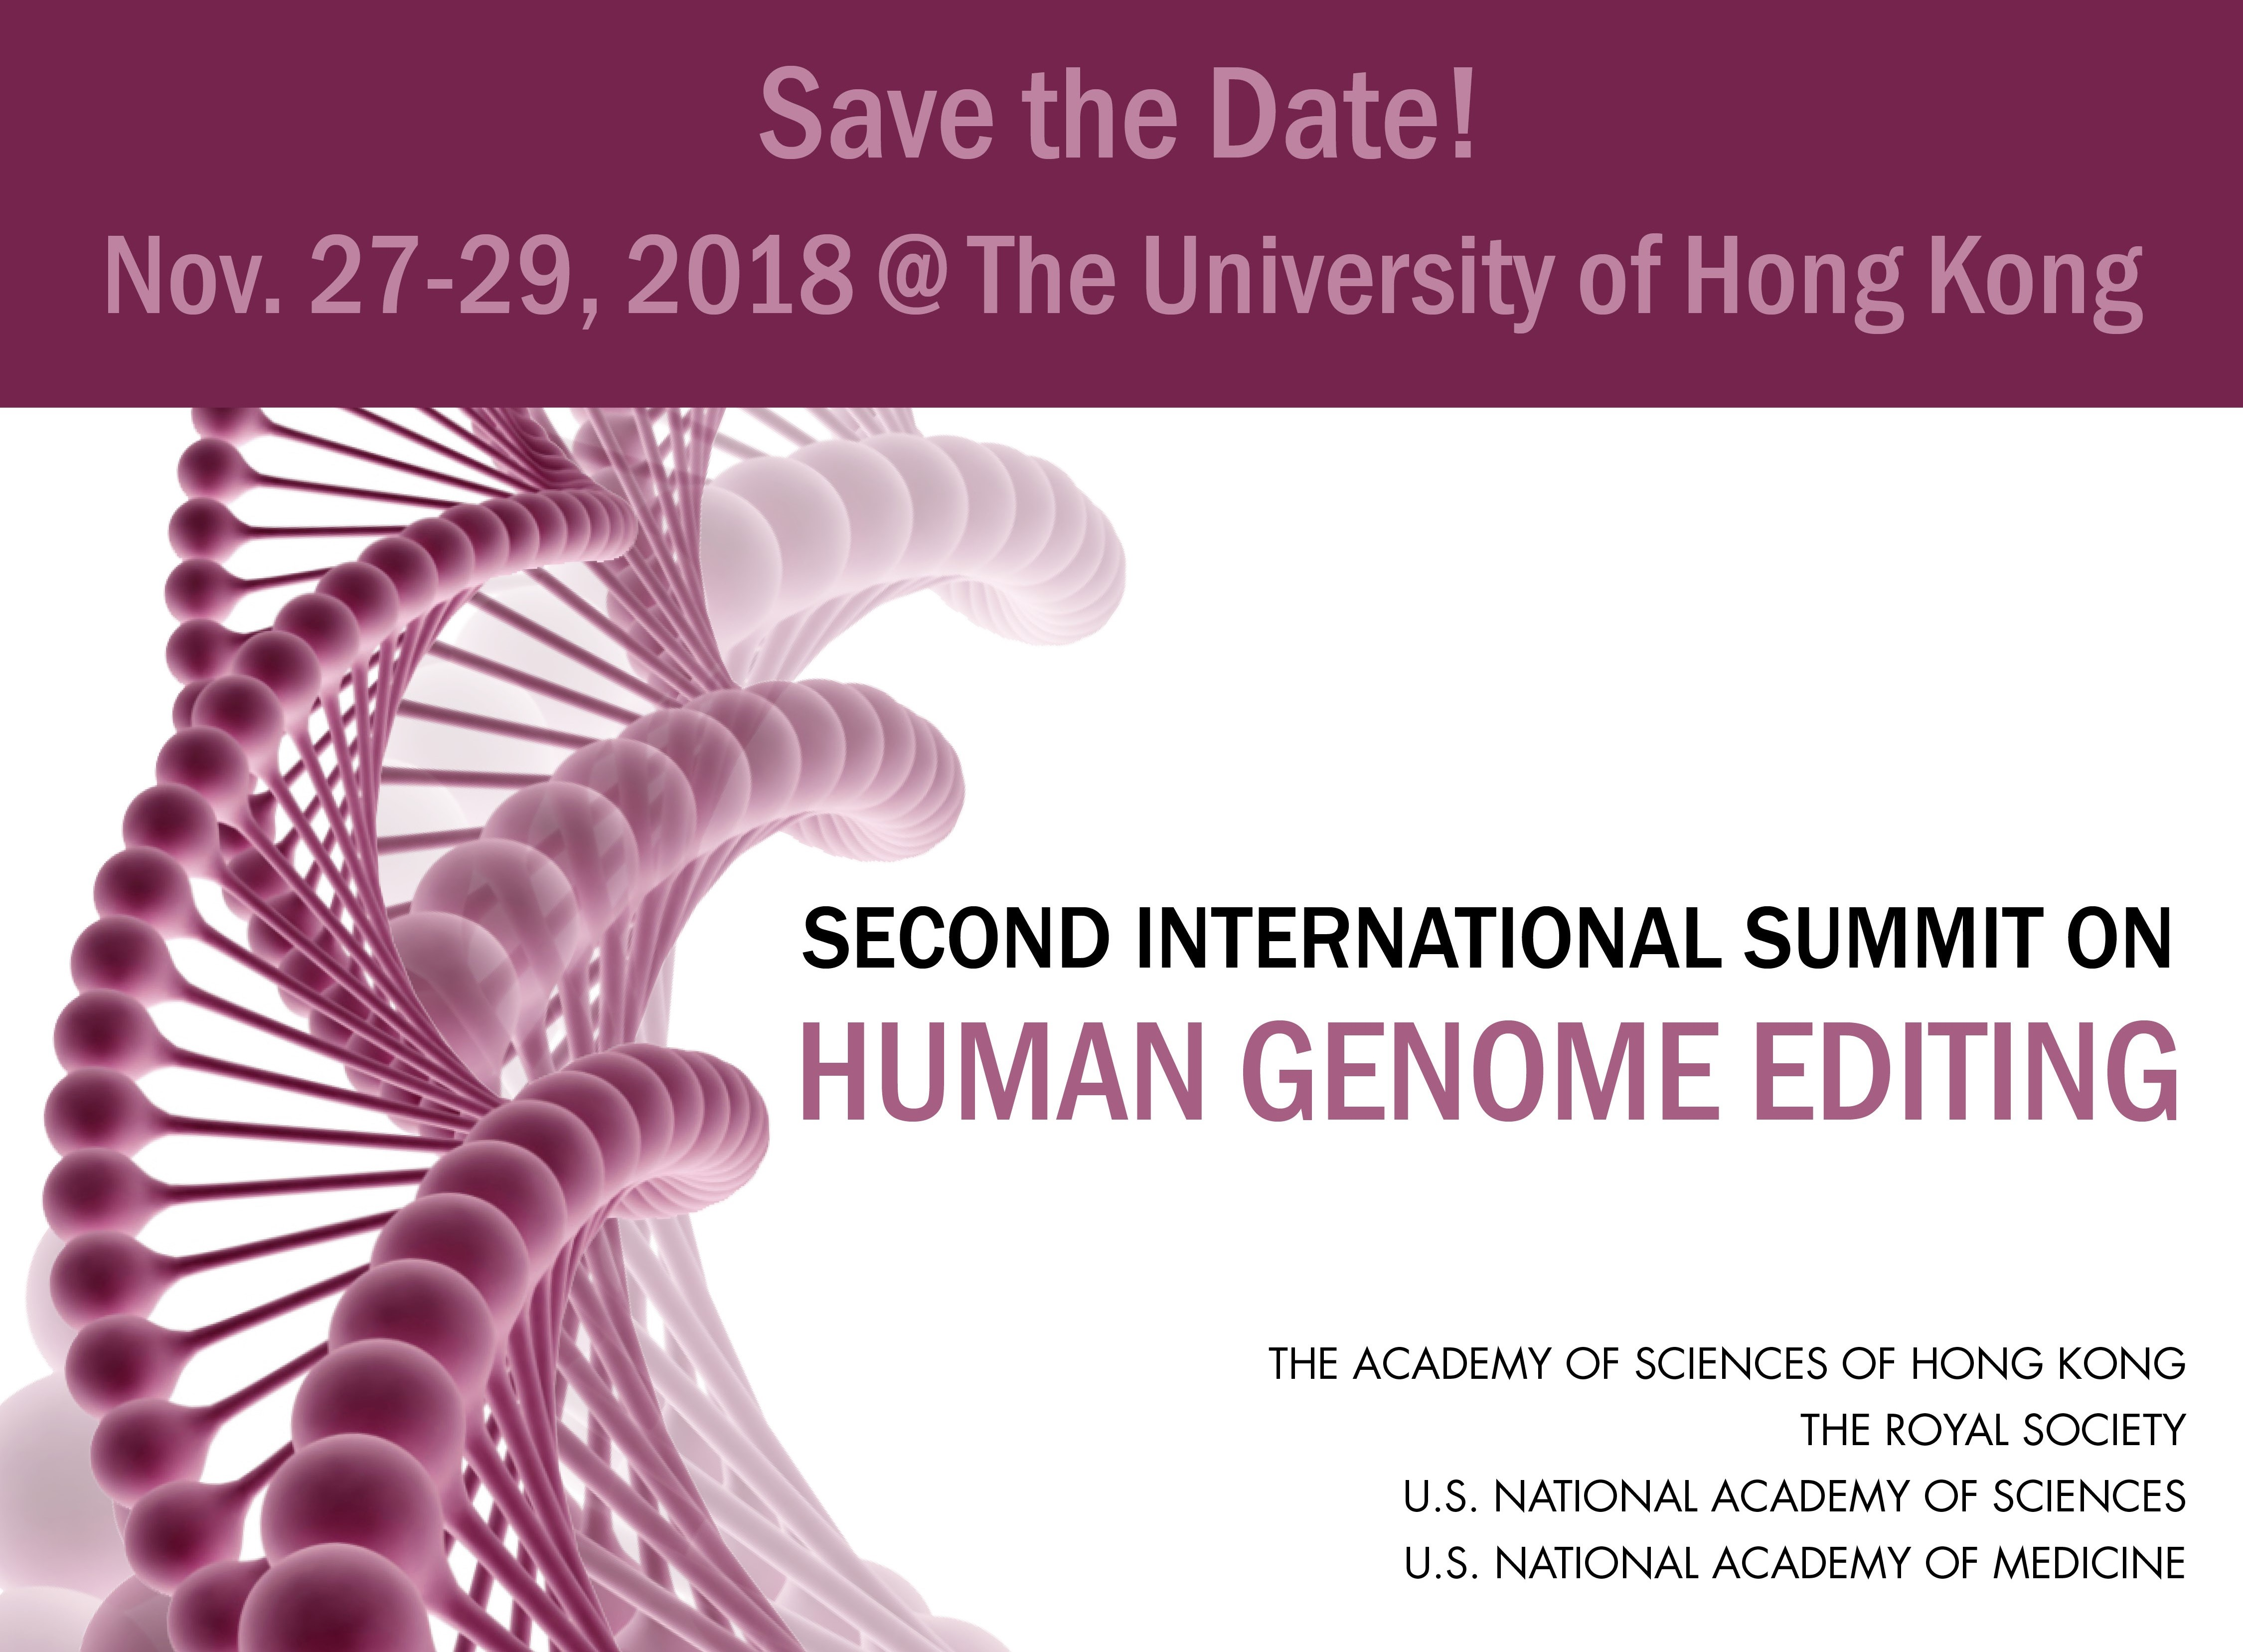 ASHK will co-host the second International Summit on Human Genome Editing in Hong Kong on 27-29 November 2018. Please save the date!